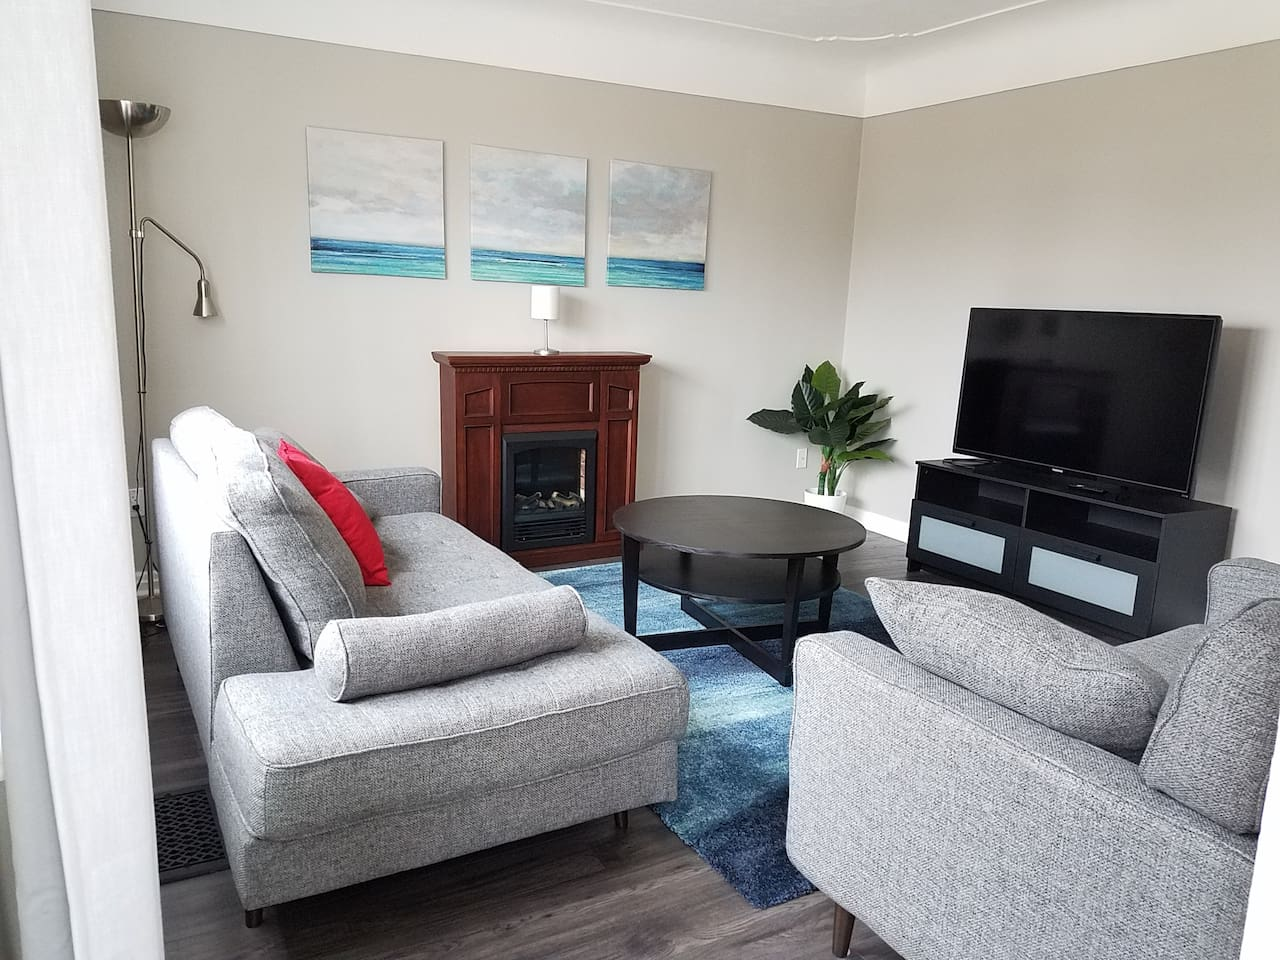 The elegant and essential livingroom features an electric fireplace, a 4k television and a daybed to cozy up in and relax.   The television is internet connected so you can stream your favorite shows.